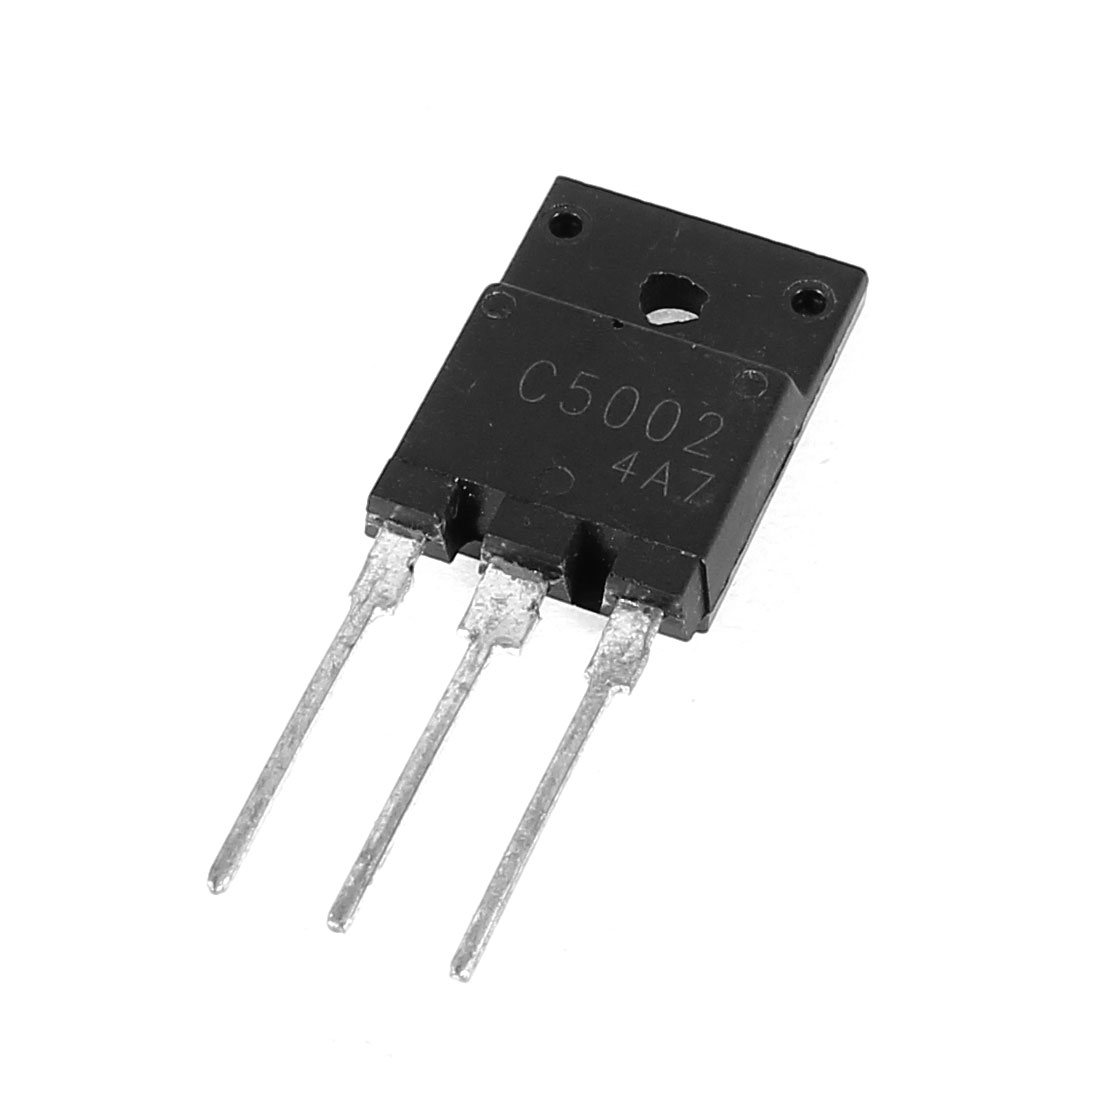 C5002 High Voltage Semiconductor 3 Pin NPN Power Transistor 700V 4A